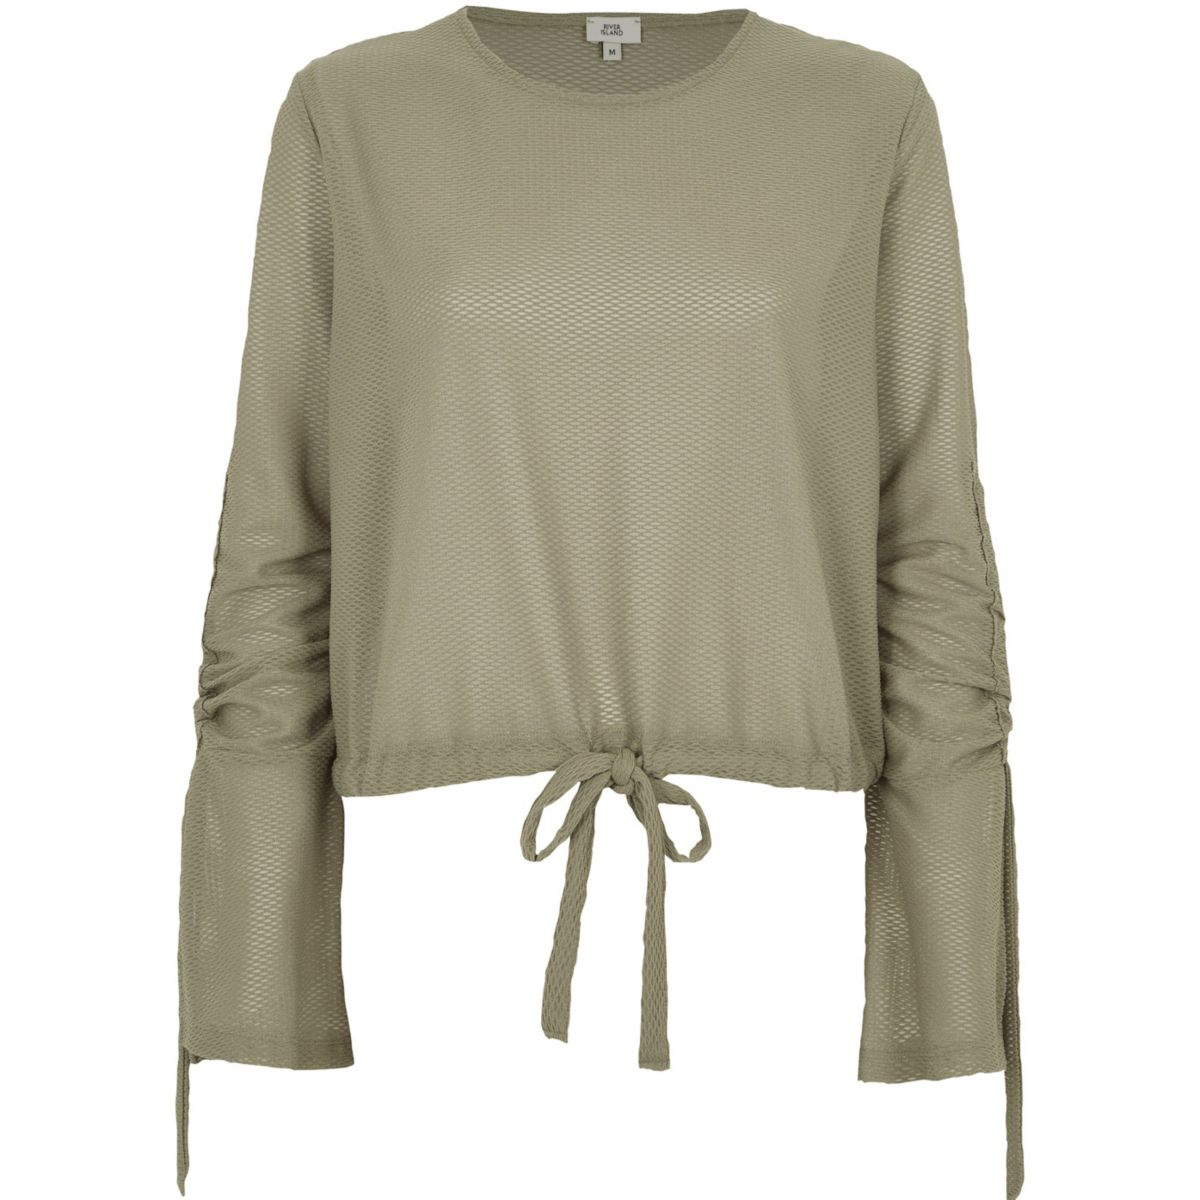 Green textured ruched sleeve top